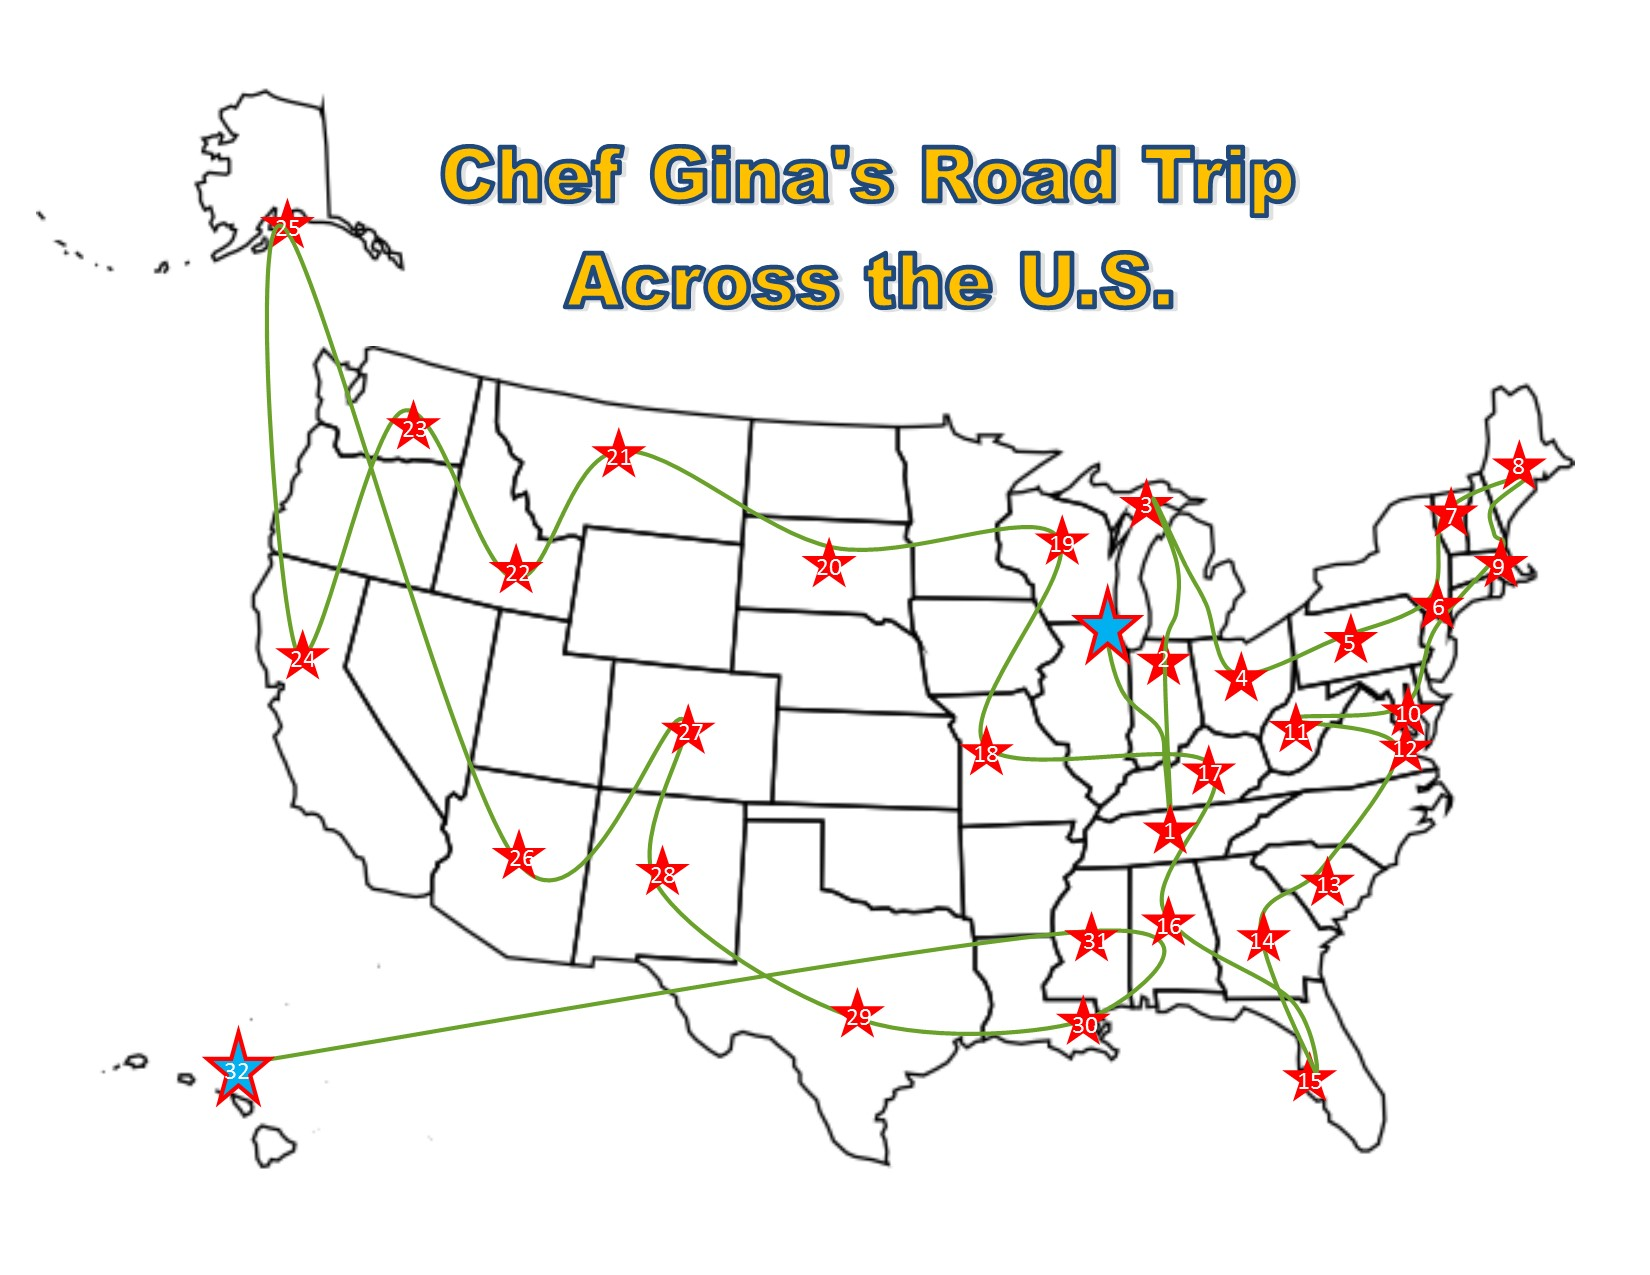 Chef Gina's Road Trip Across America